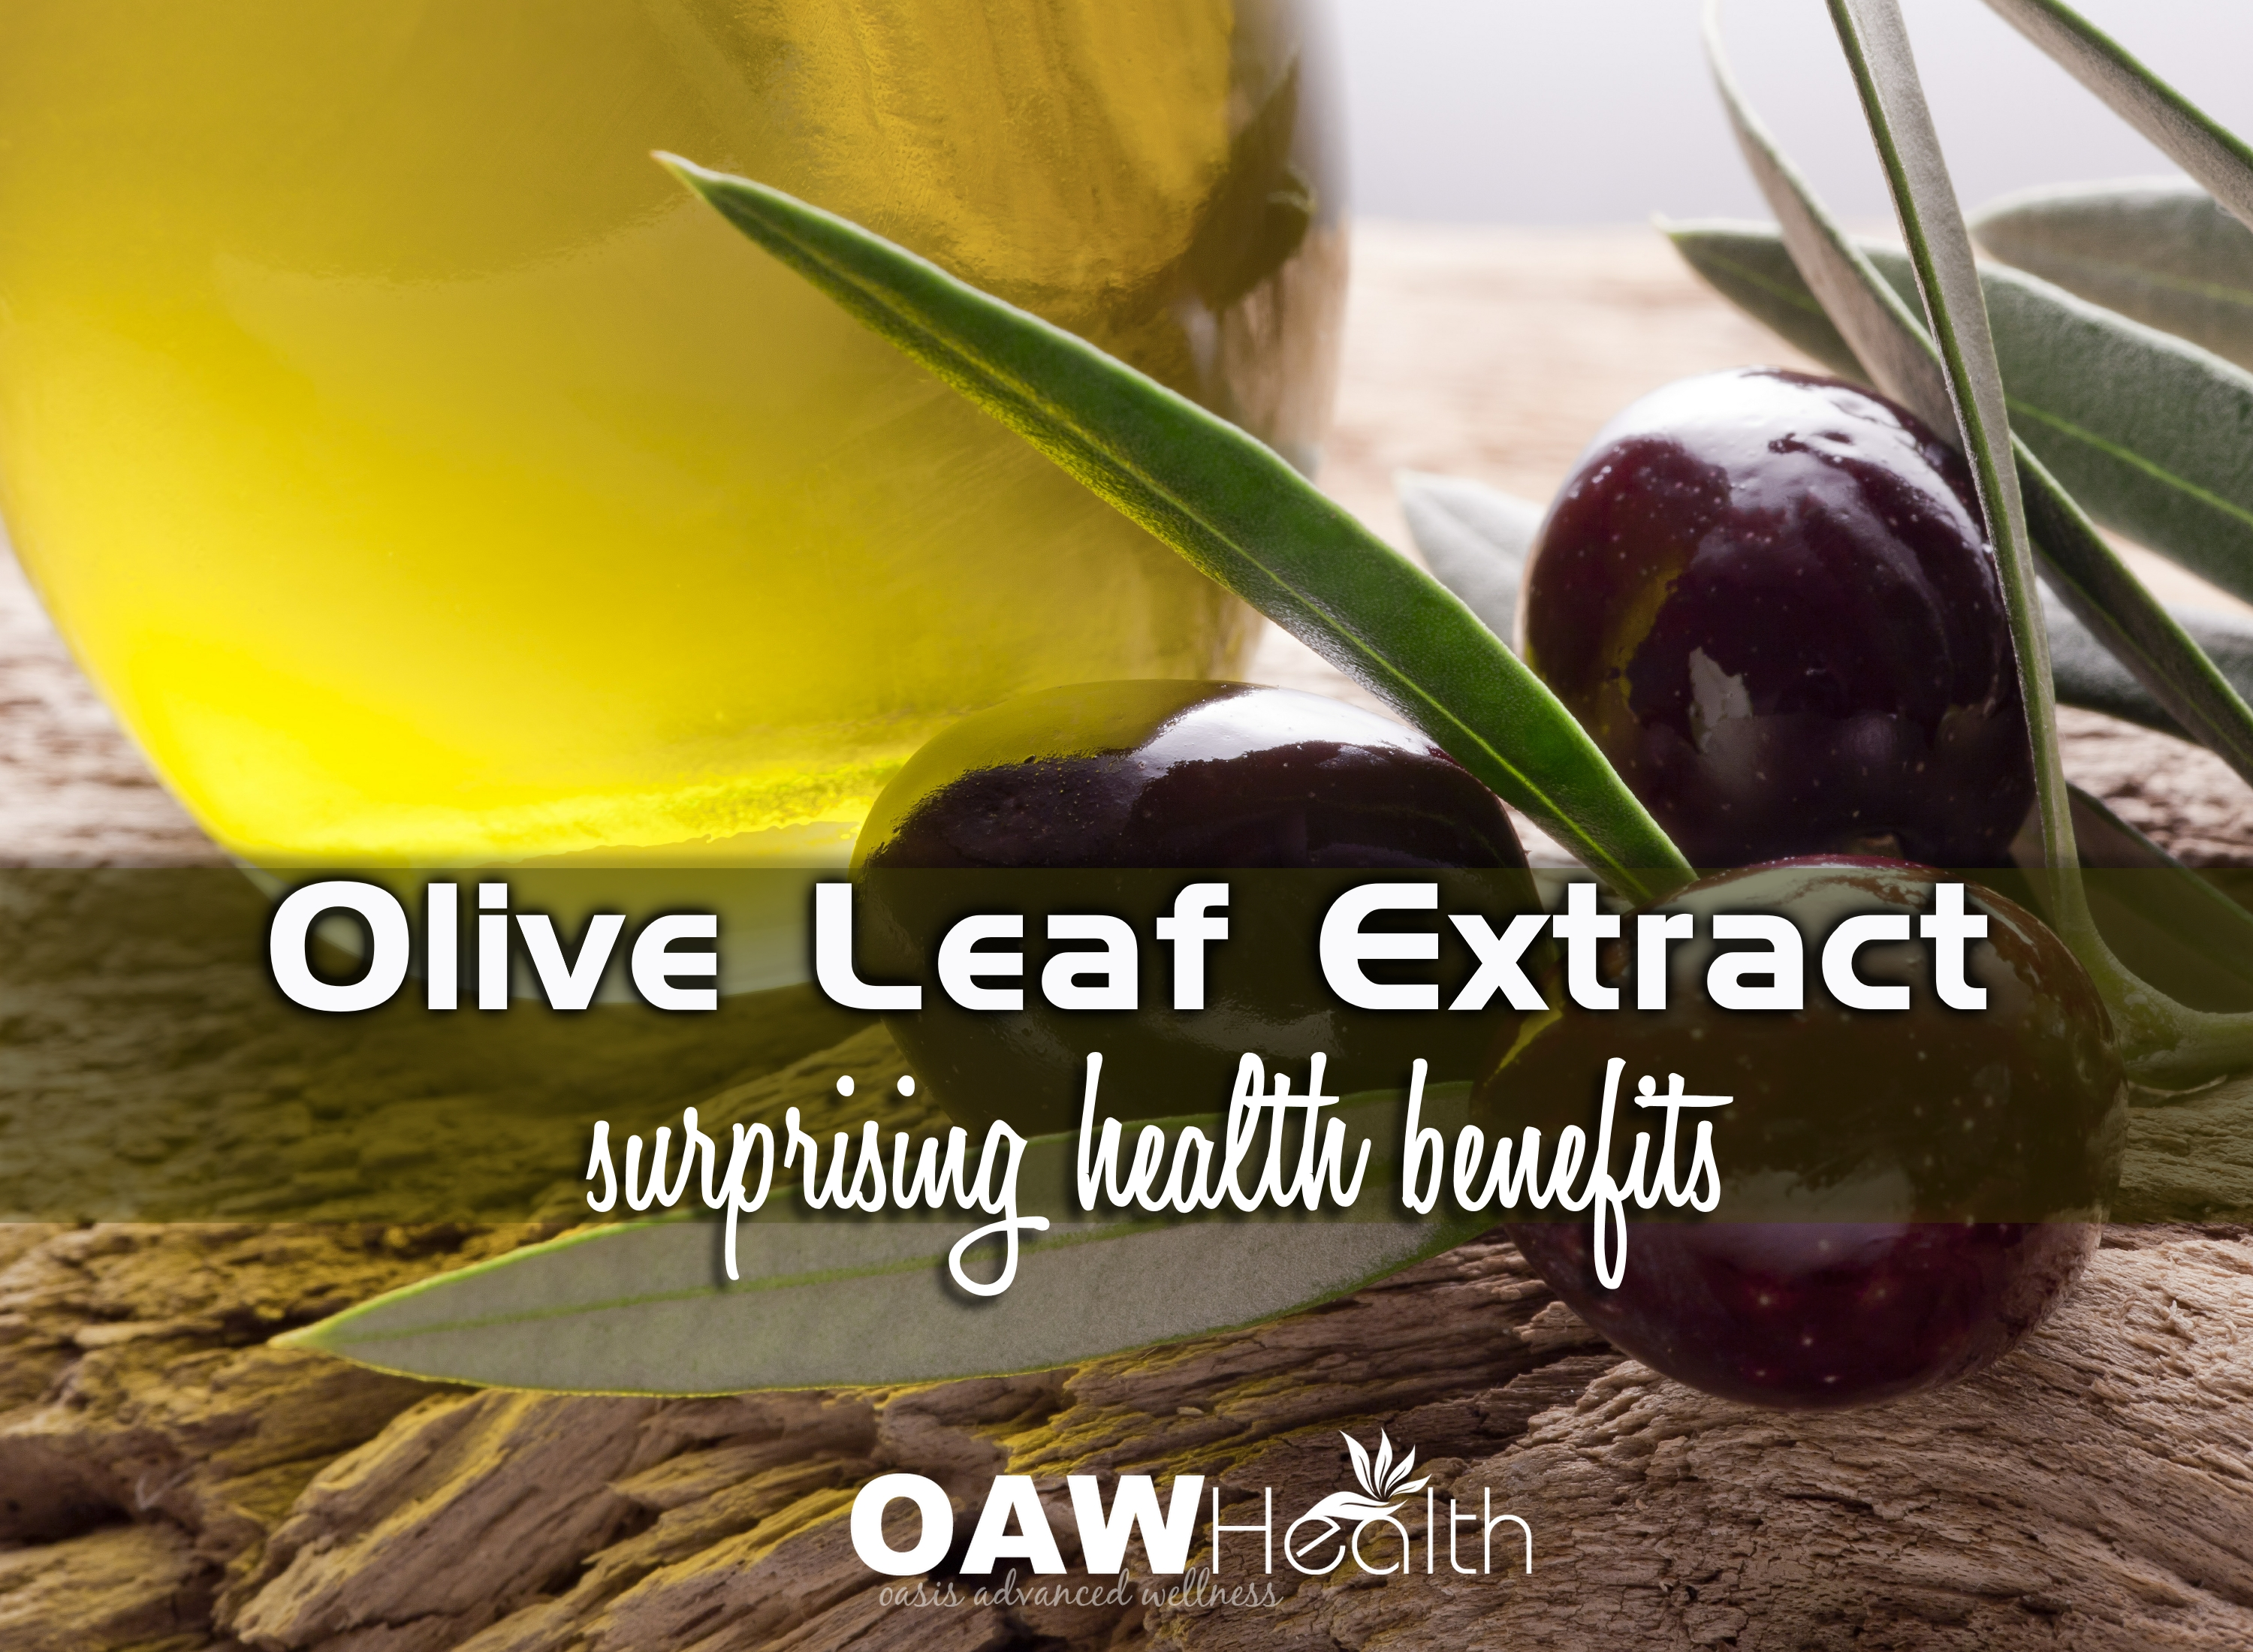 Surprising Health Benefits of Olive Leaf Extract